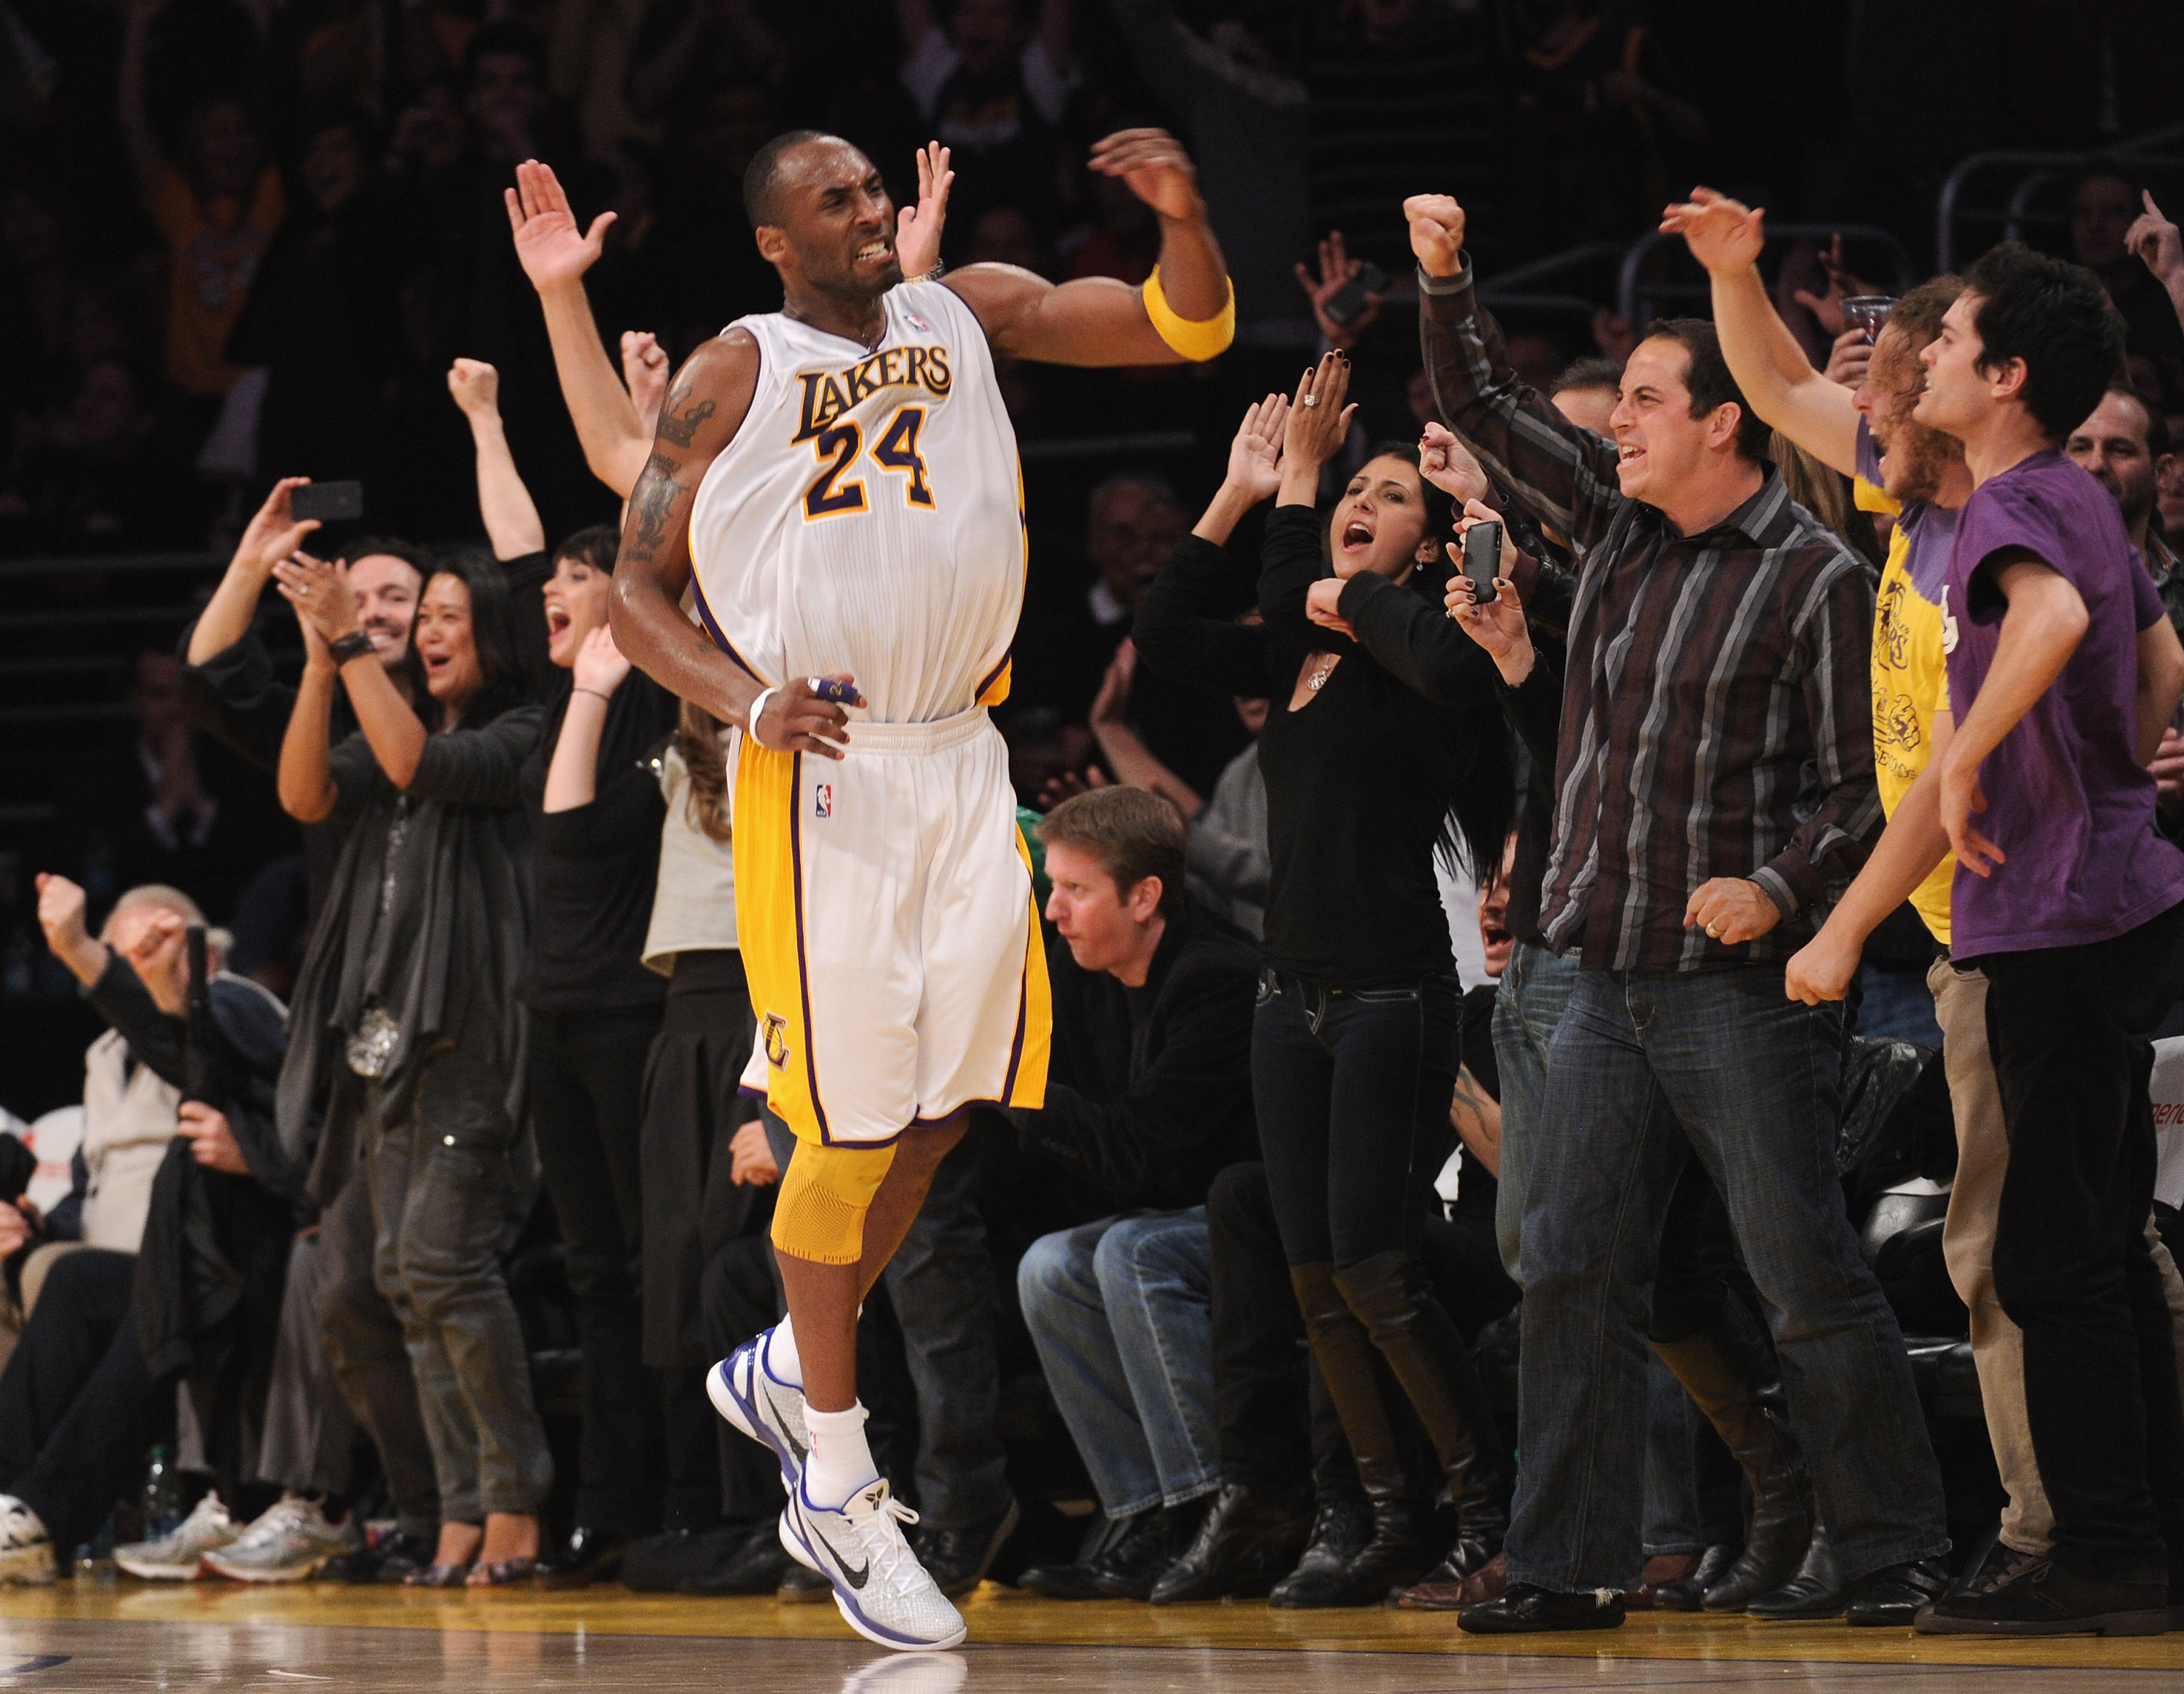 LOS ANGELES, CA - MARCH 20:  Kobe Bryant #24 of the Los Angeles Lakers celebrates his basket in the last minute on way to an 84-80 win over the  Portland Trail Blazers at the Staples Center on March 20, 2011 in Los Angeles, California.  NOTE TO USER: User